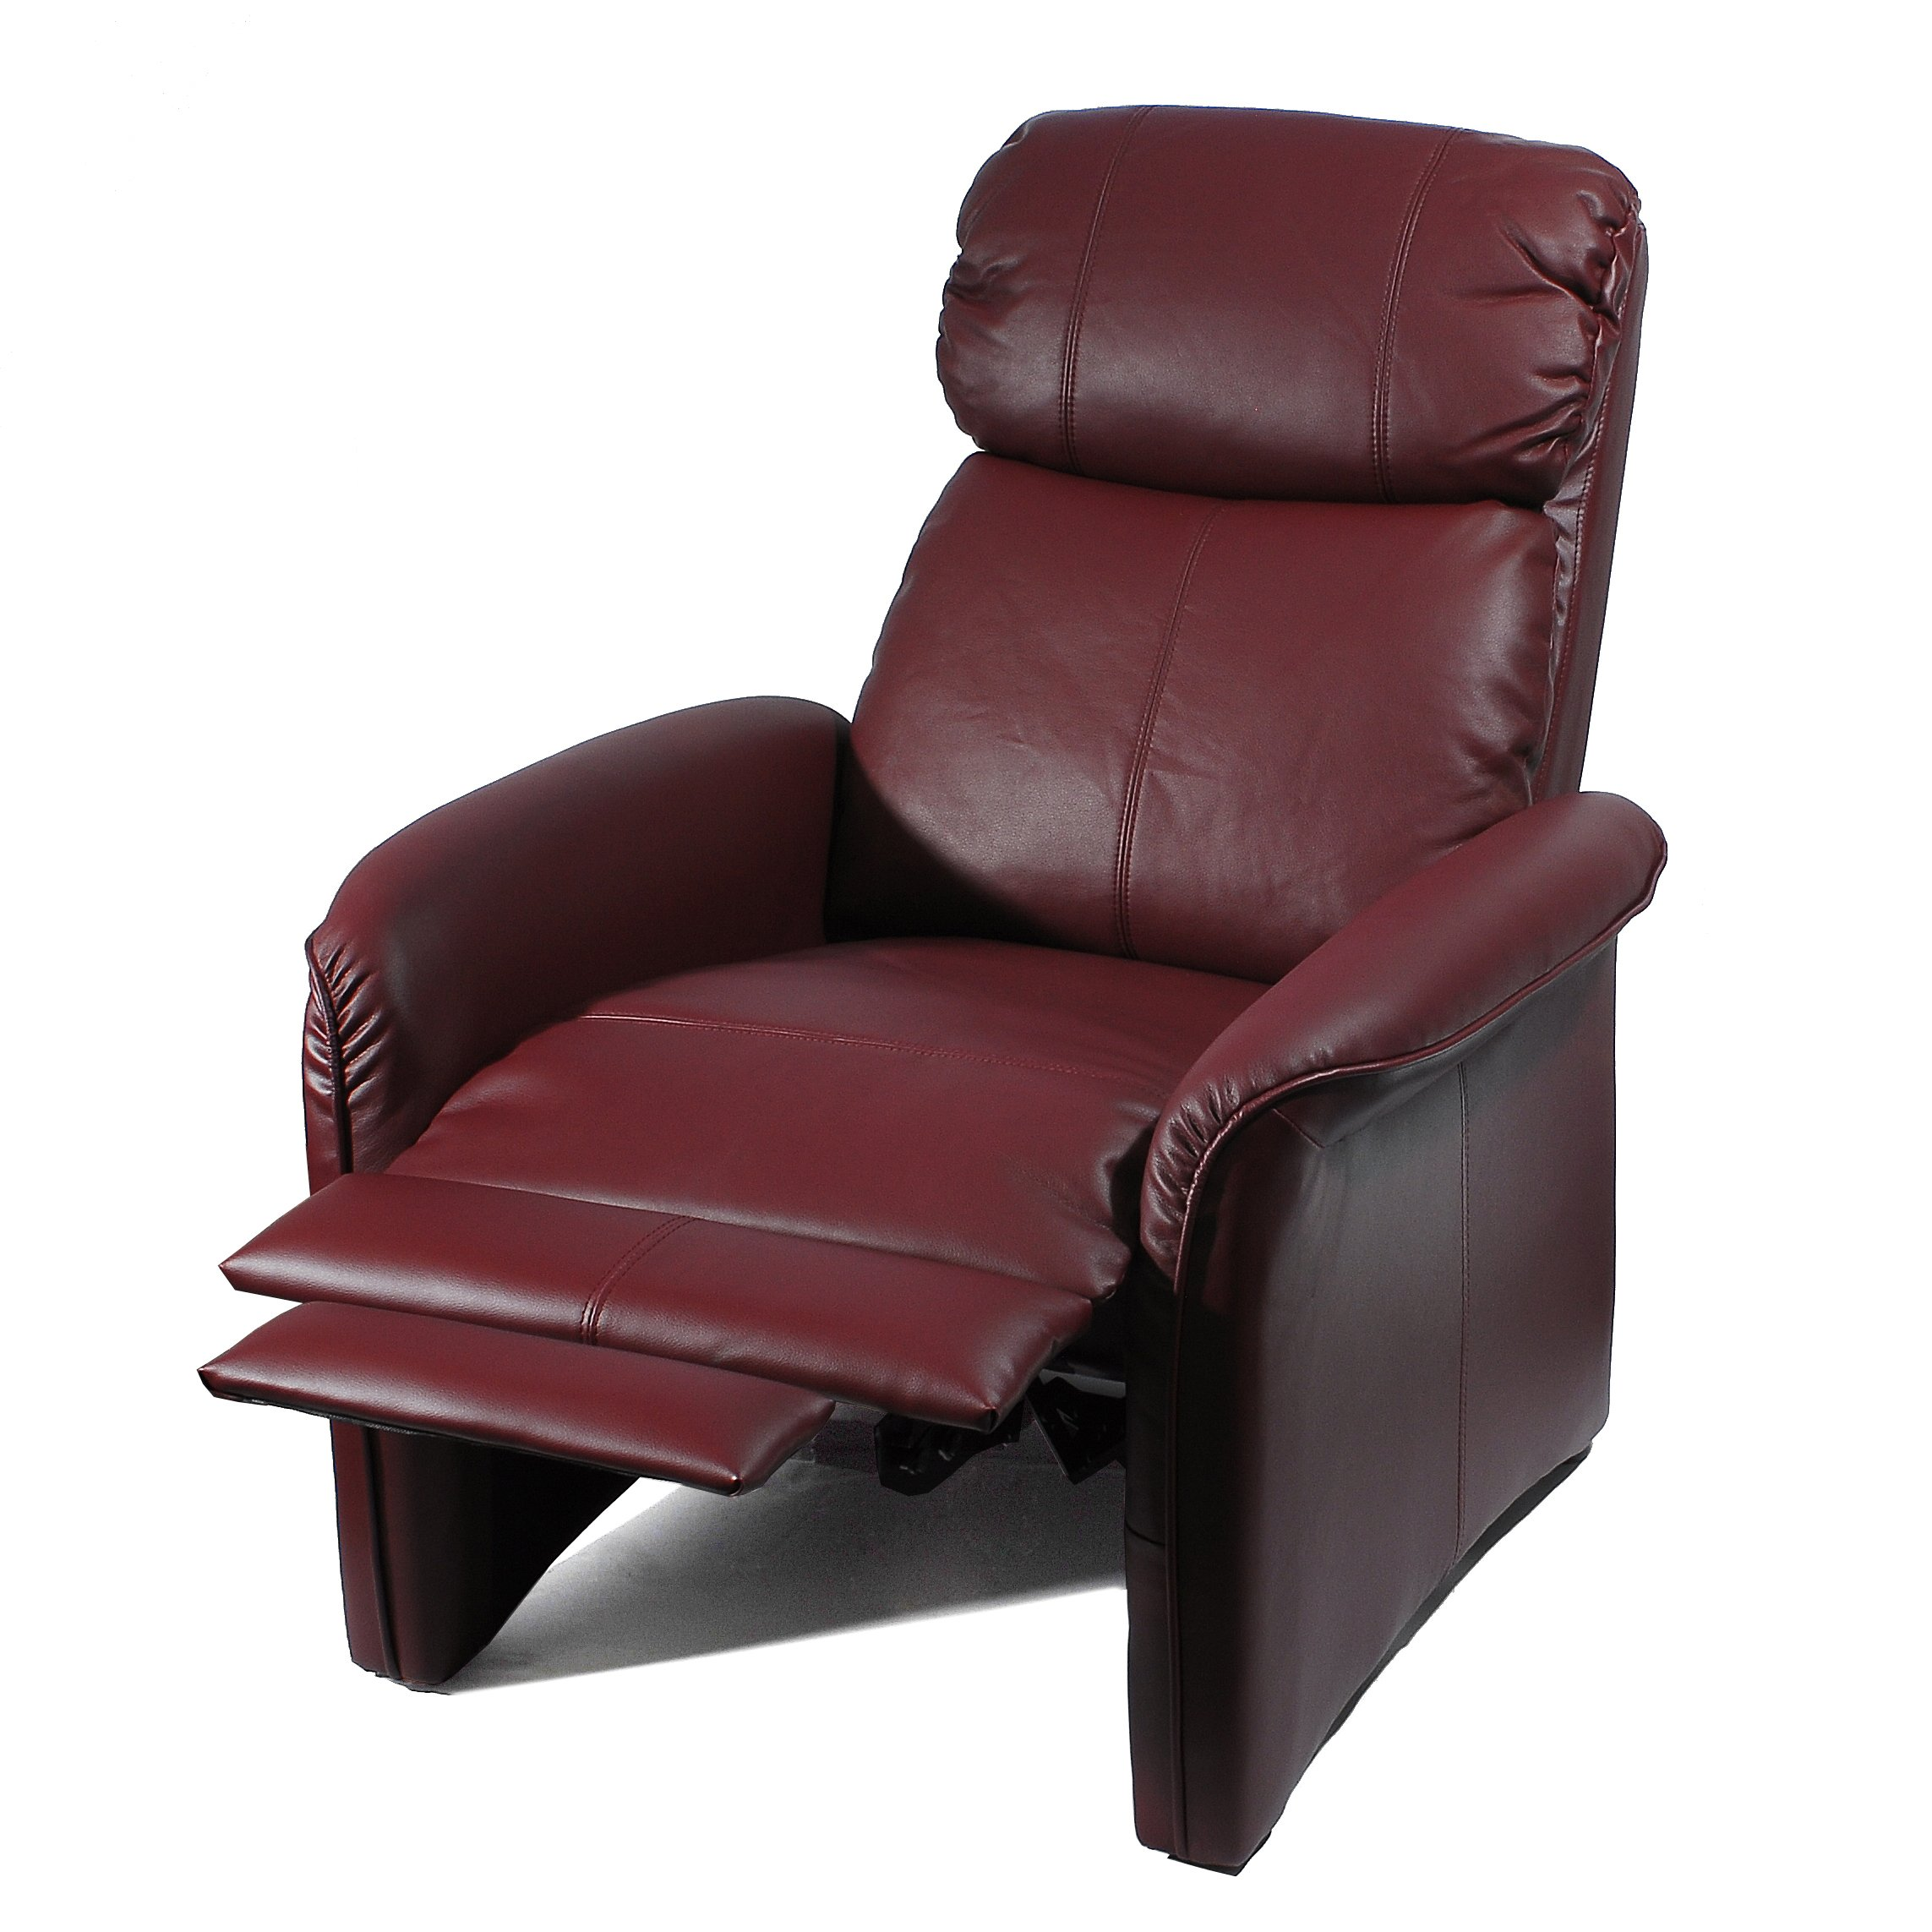 Home Leather Soft Pad Recliner 3 Positional Leather Cozy Recliner Chair Ivory  sc 1 st  FurnitureNDecor.com & Home Leather Soft Pad Recliner 3 Positional Leather Cozy Recliner ... islam-shia.org